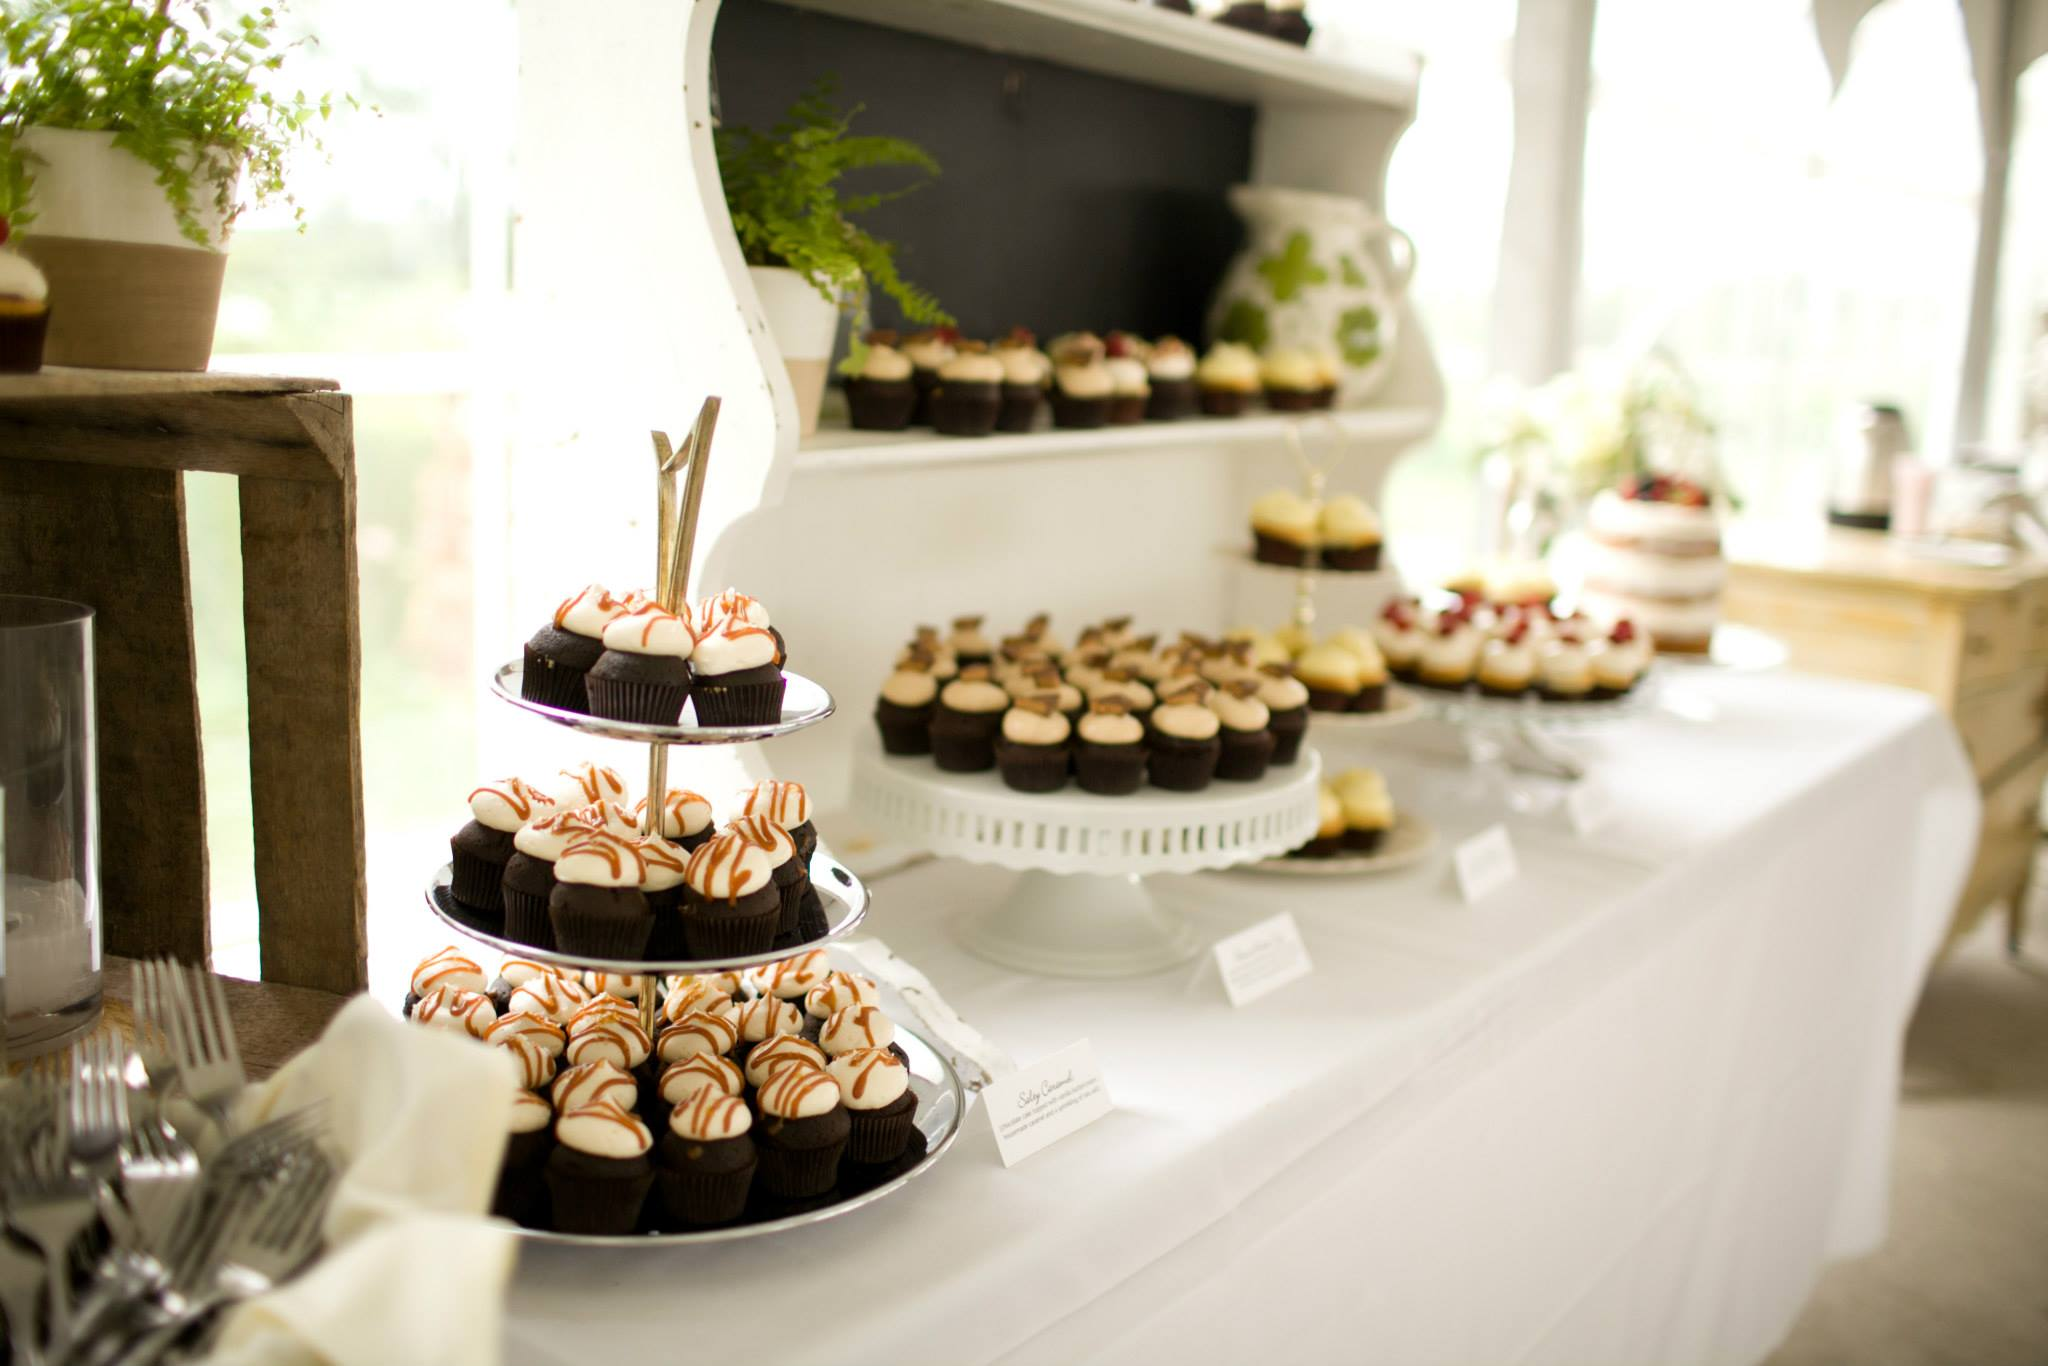 Mini Cupcakes on a buffet are always a crowdpleaser! The cupcakes on this table include Salty Caramel, Peanut Butter Cup, Lemon Drop and Vanilla Strawberry along with a Naked Cutting cake topped with fruit.